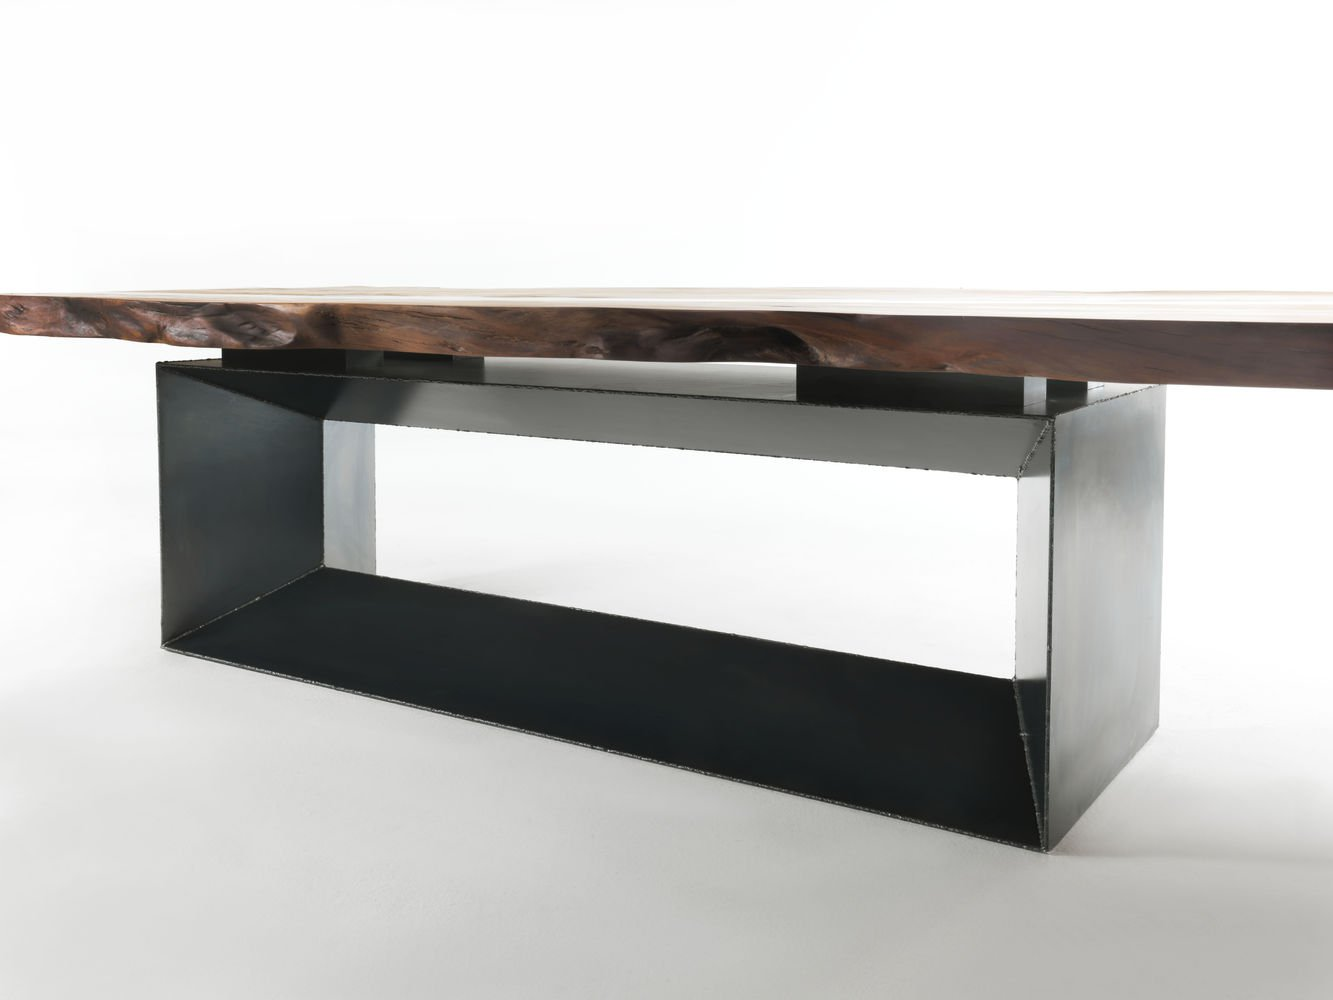 Cube Kauri  dining table from Riva 1920, designed by C.R. & S. Riva 1920